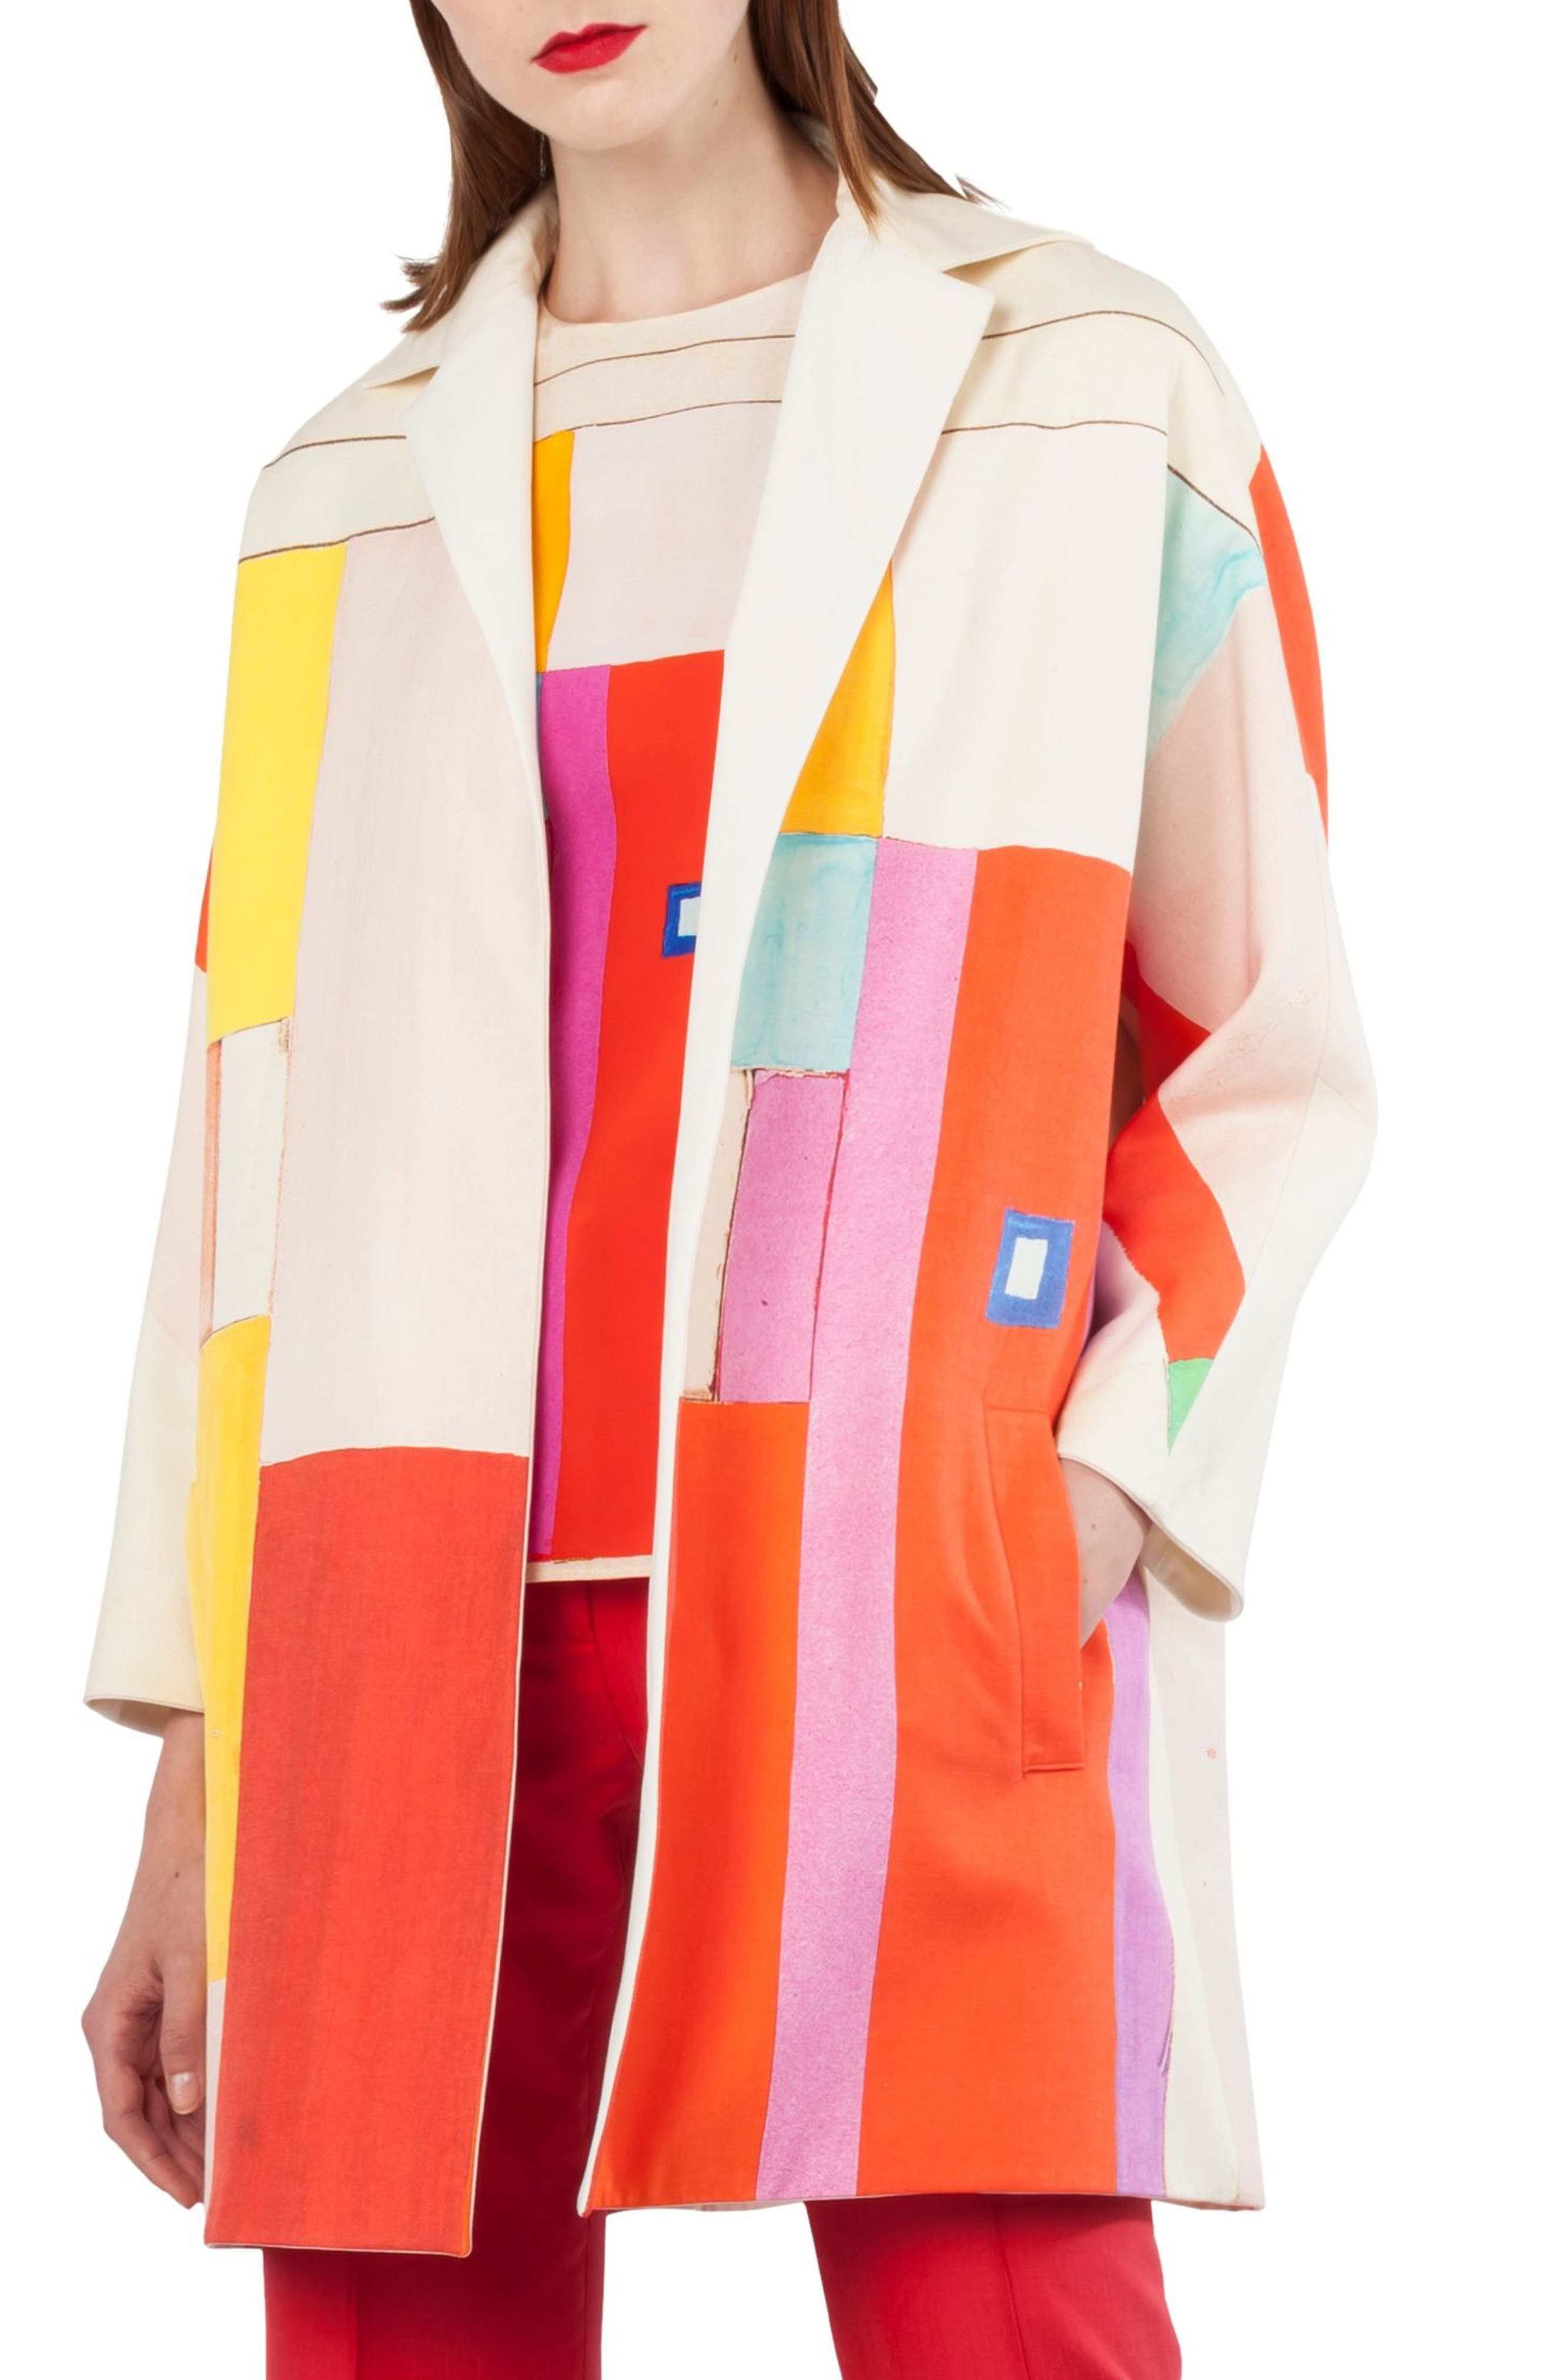 Mural Print Cotton & Silk Reversible Coat,                             Main thumbnail 1, color,                             Multicolor